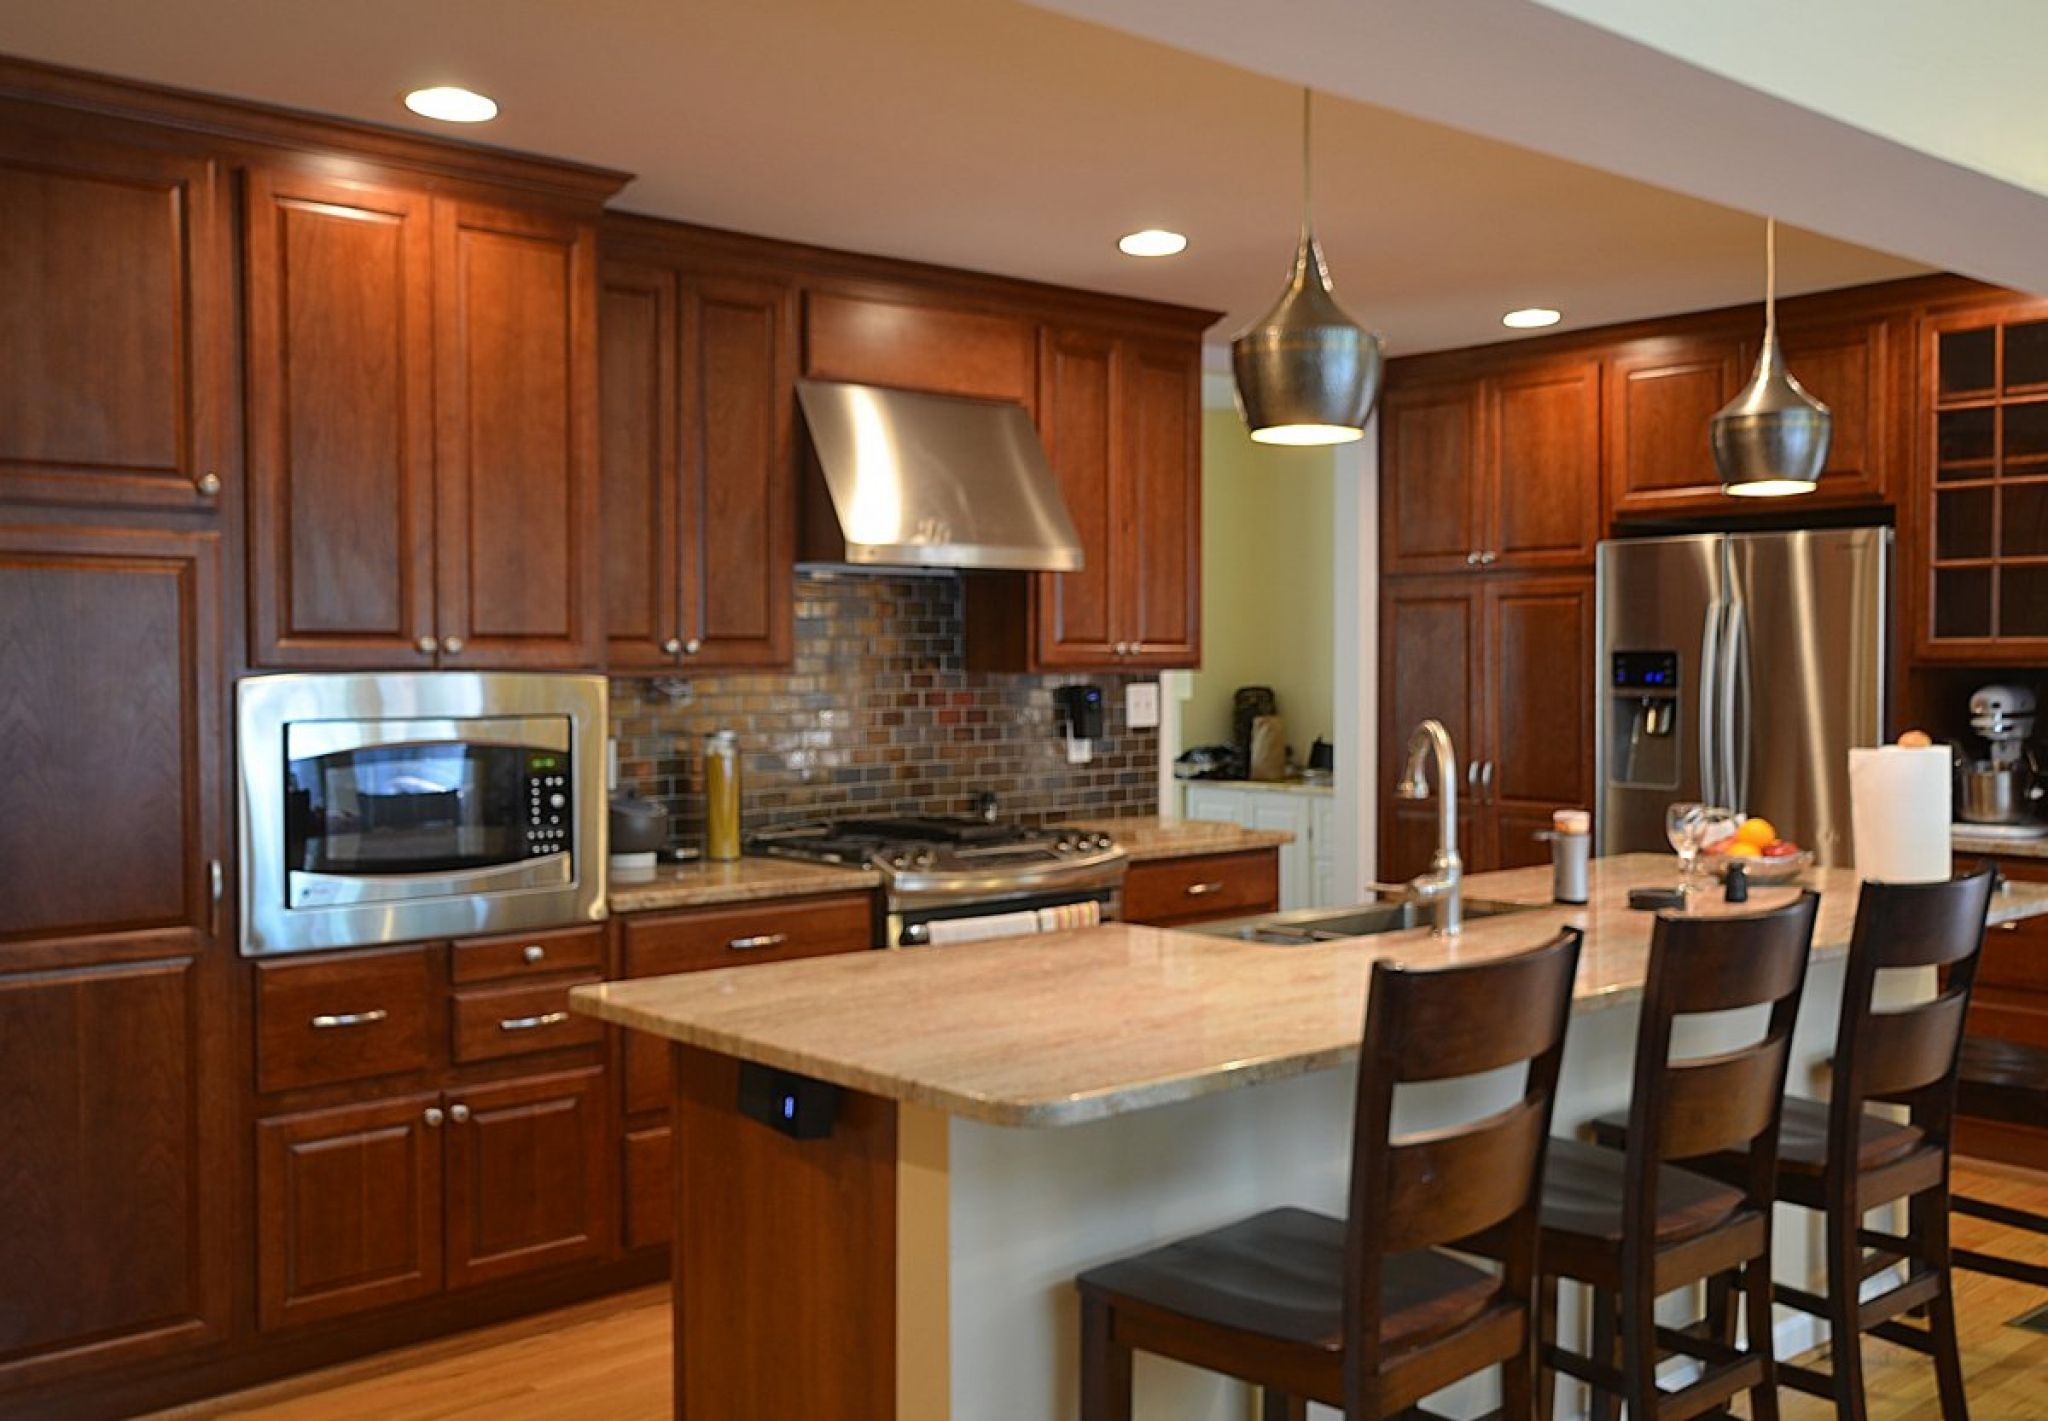 Bon Kitchen Cabinets Northern Virginia   Decorating Ideas For Kitchens Check  More At Http://